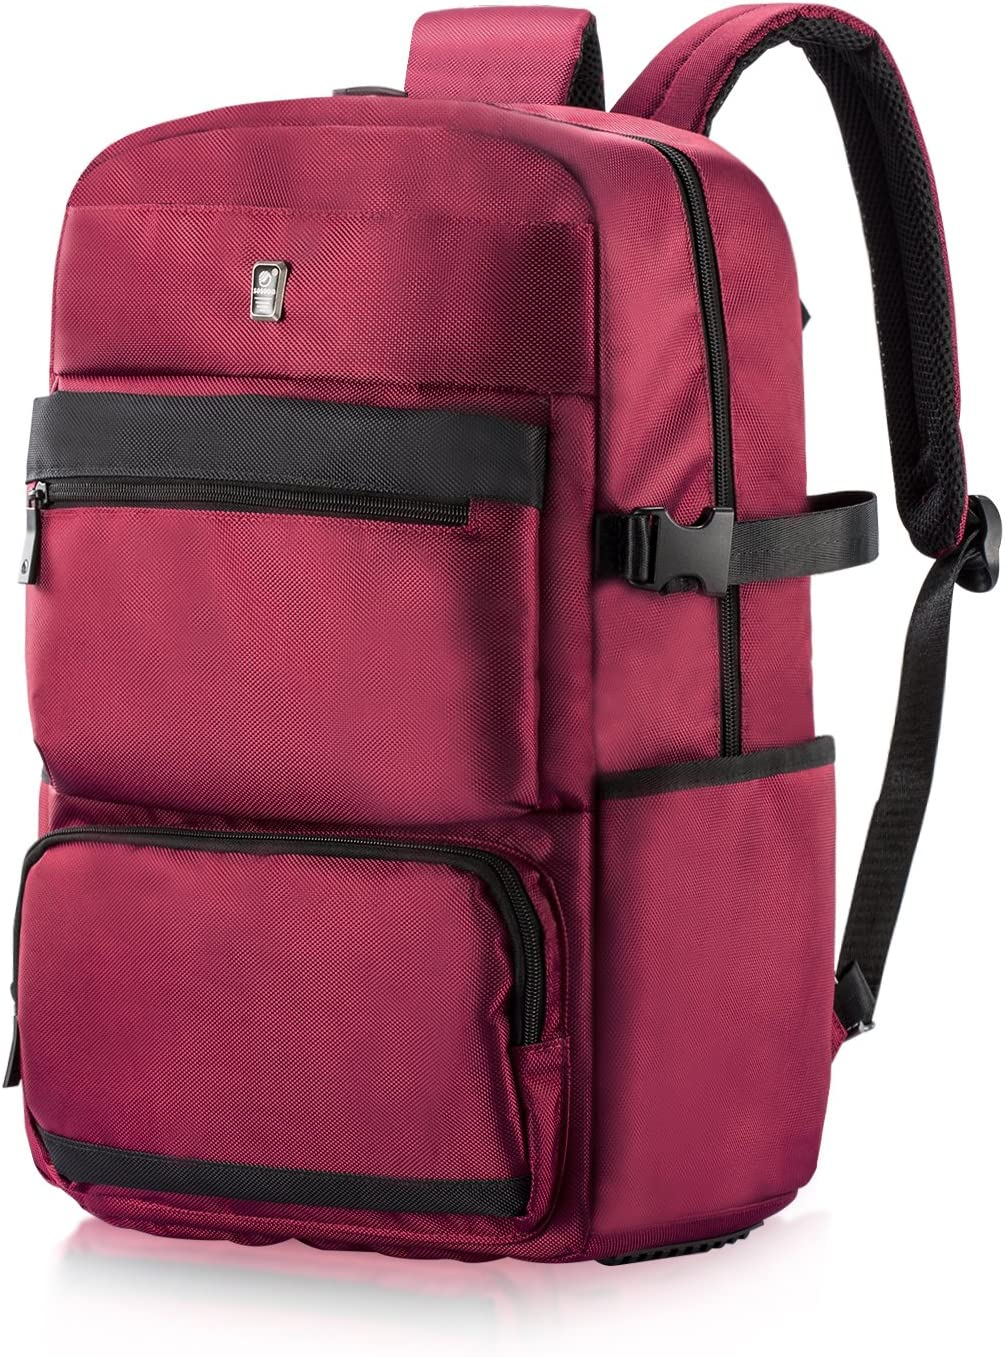 Travel Laptop Backpack, Sosoon Lightweight Waterproof Resistant Polyester Business Backpack School Bag Travel Daypack for College Student Work Men Women, Fits Under 17 Inch Laptop Notebook, Red